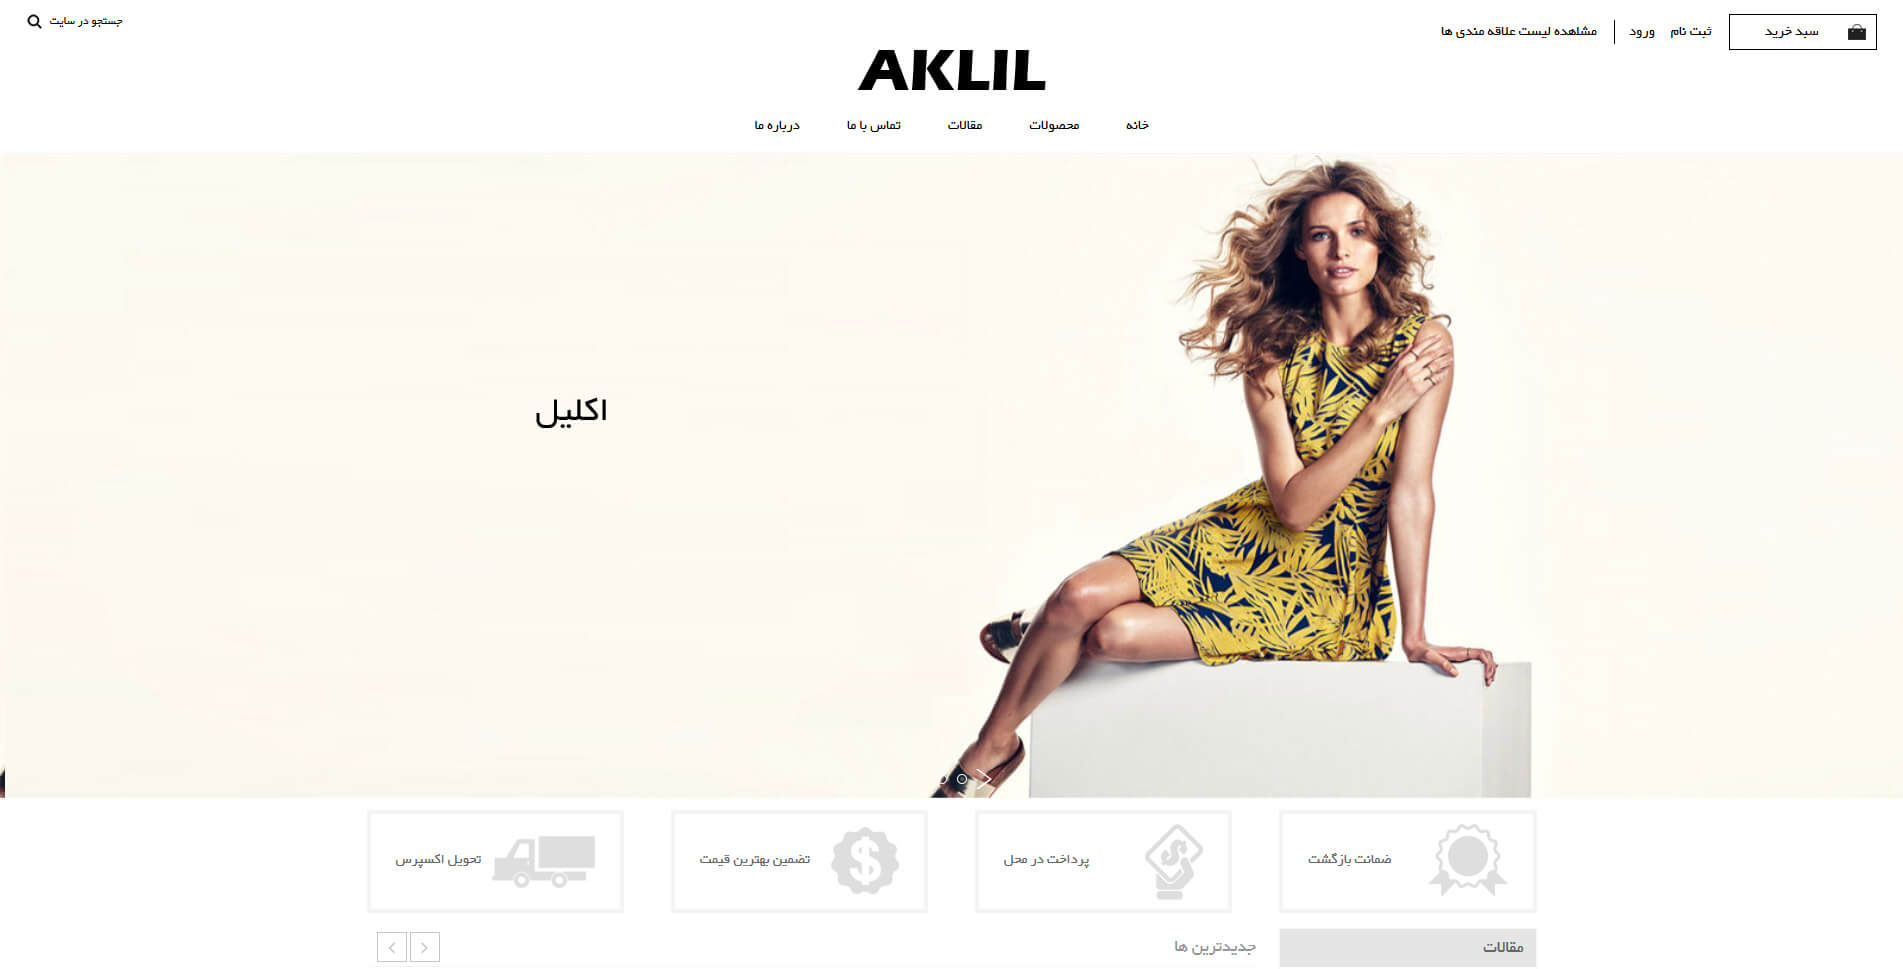 Aclil's online shop website design